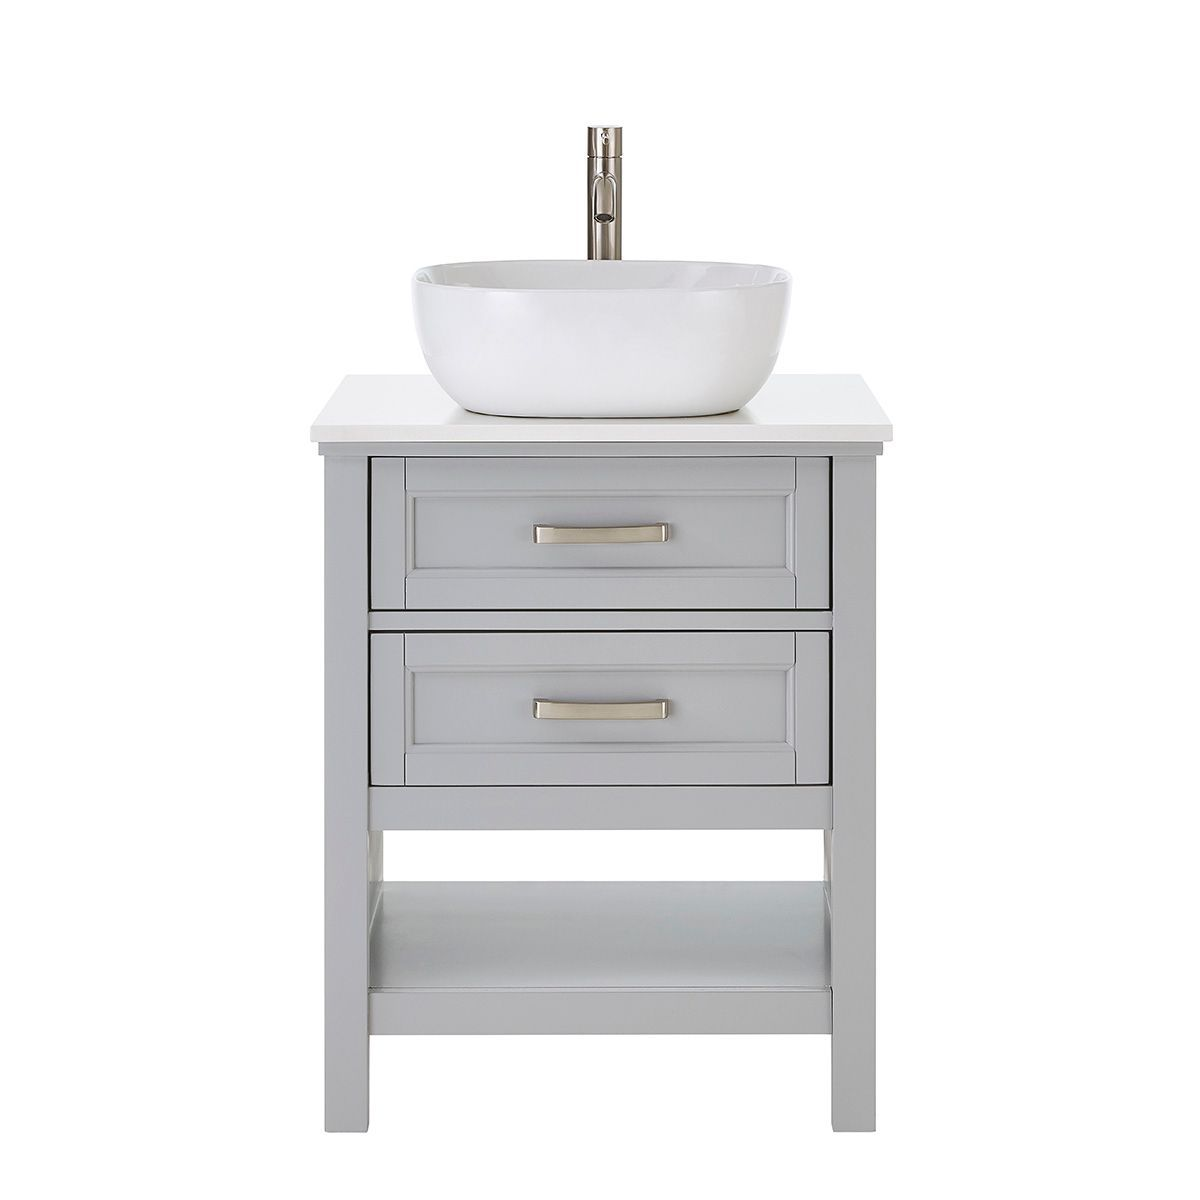 Style Selections Cromlee 24 In Light Gray Single Sink Bathroom Vanity With Engineered White Stone Engineered Stone Top Faucet Included In The Bathroom Vanities With Tops Department At Lowes Com